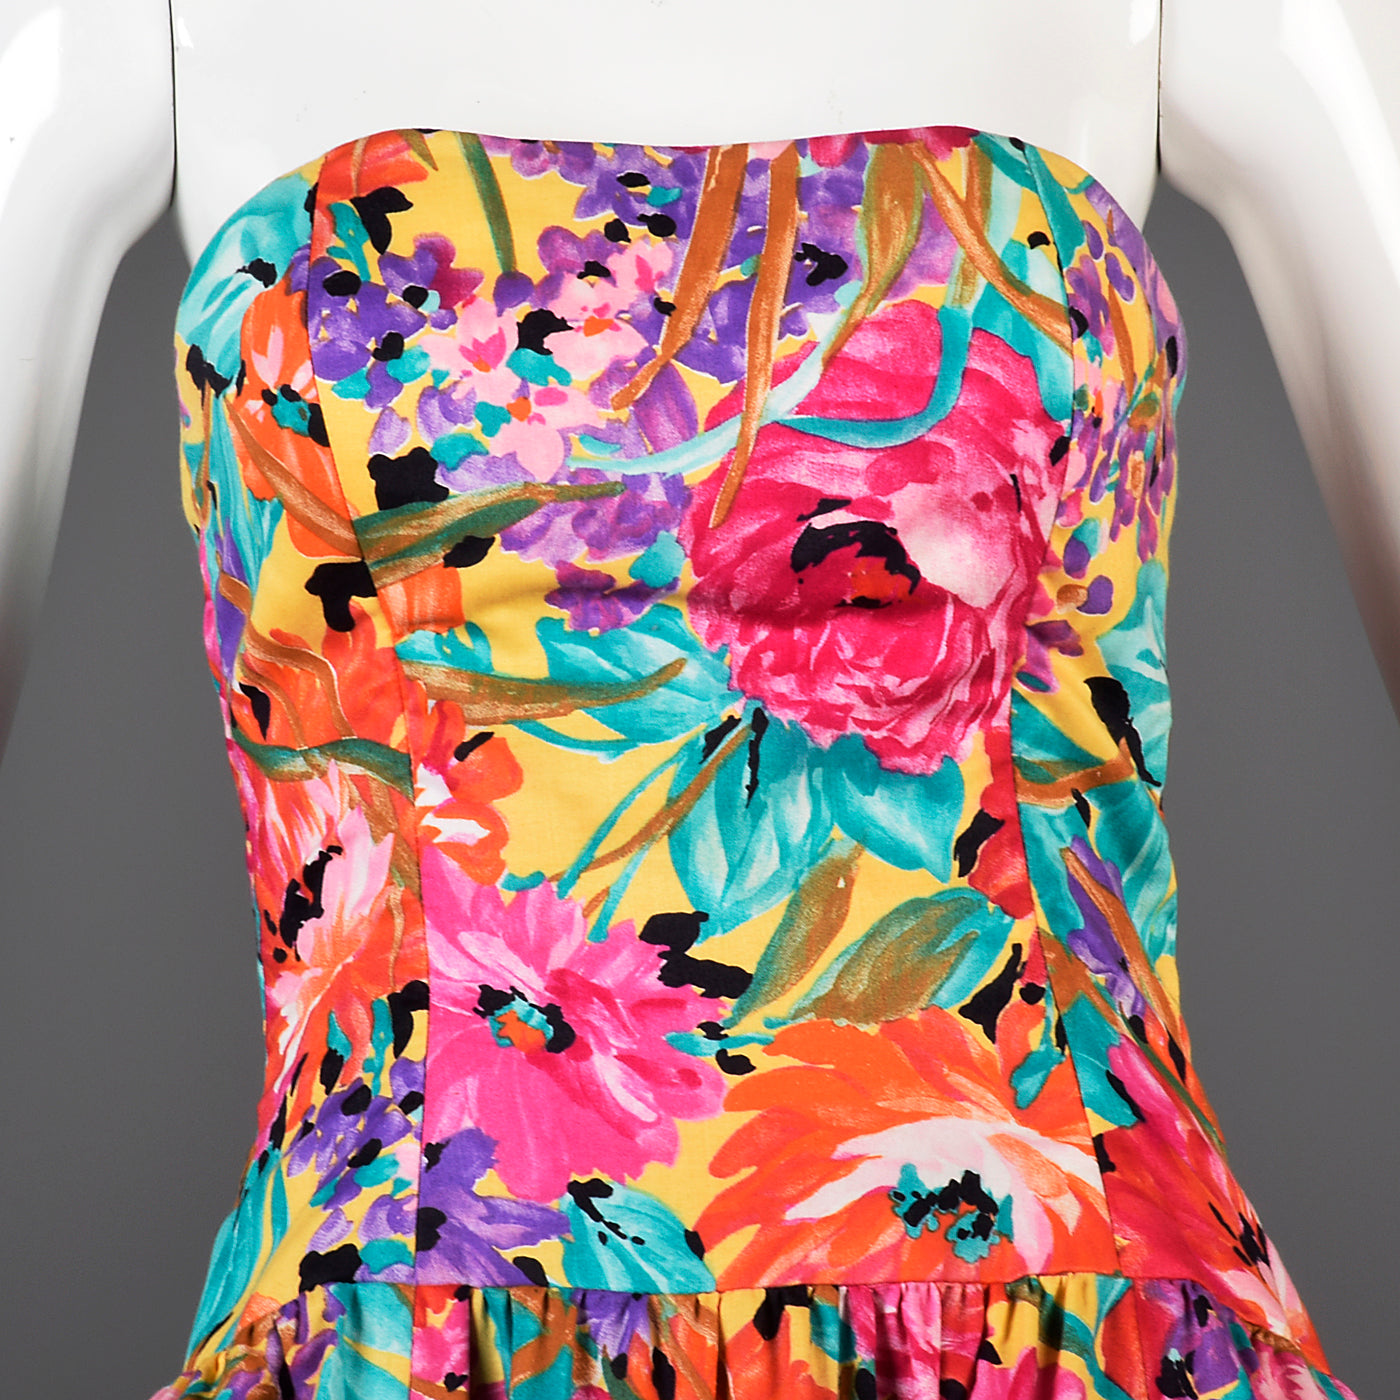 1980s Victor Costa Floral Strapless Summer Day Dress in a Colorful Floral Print